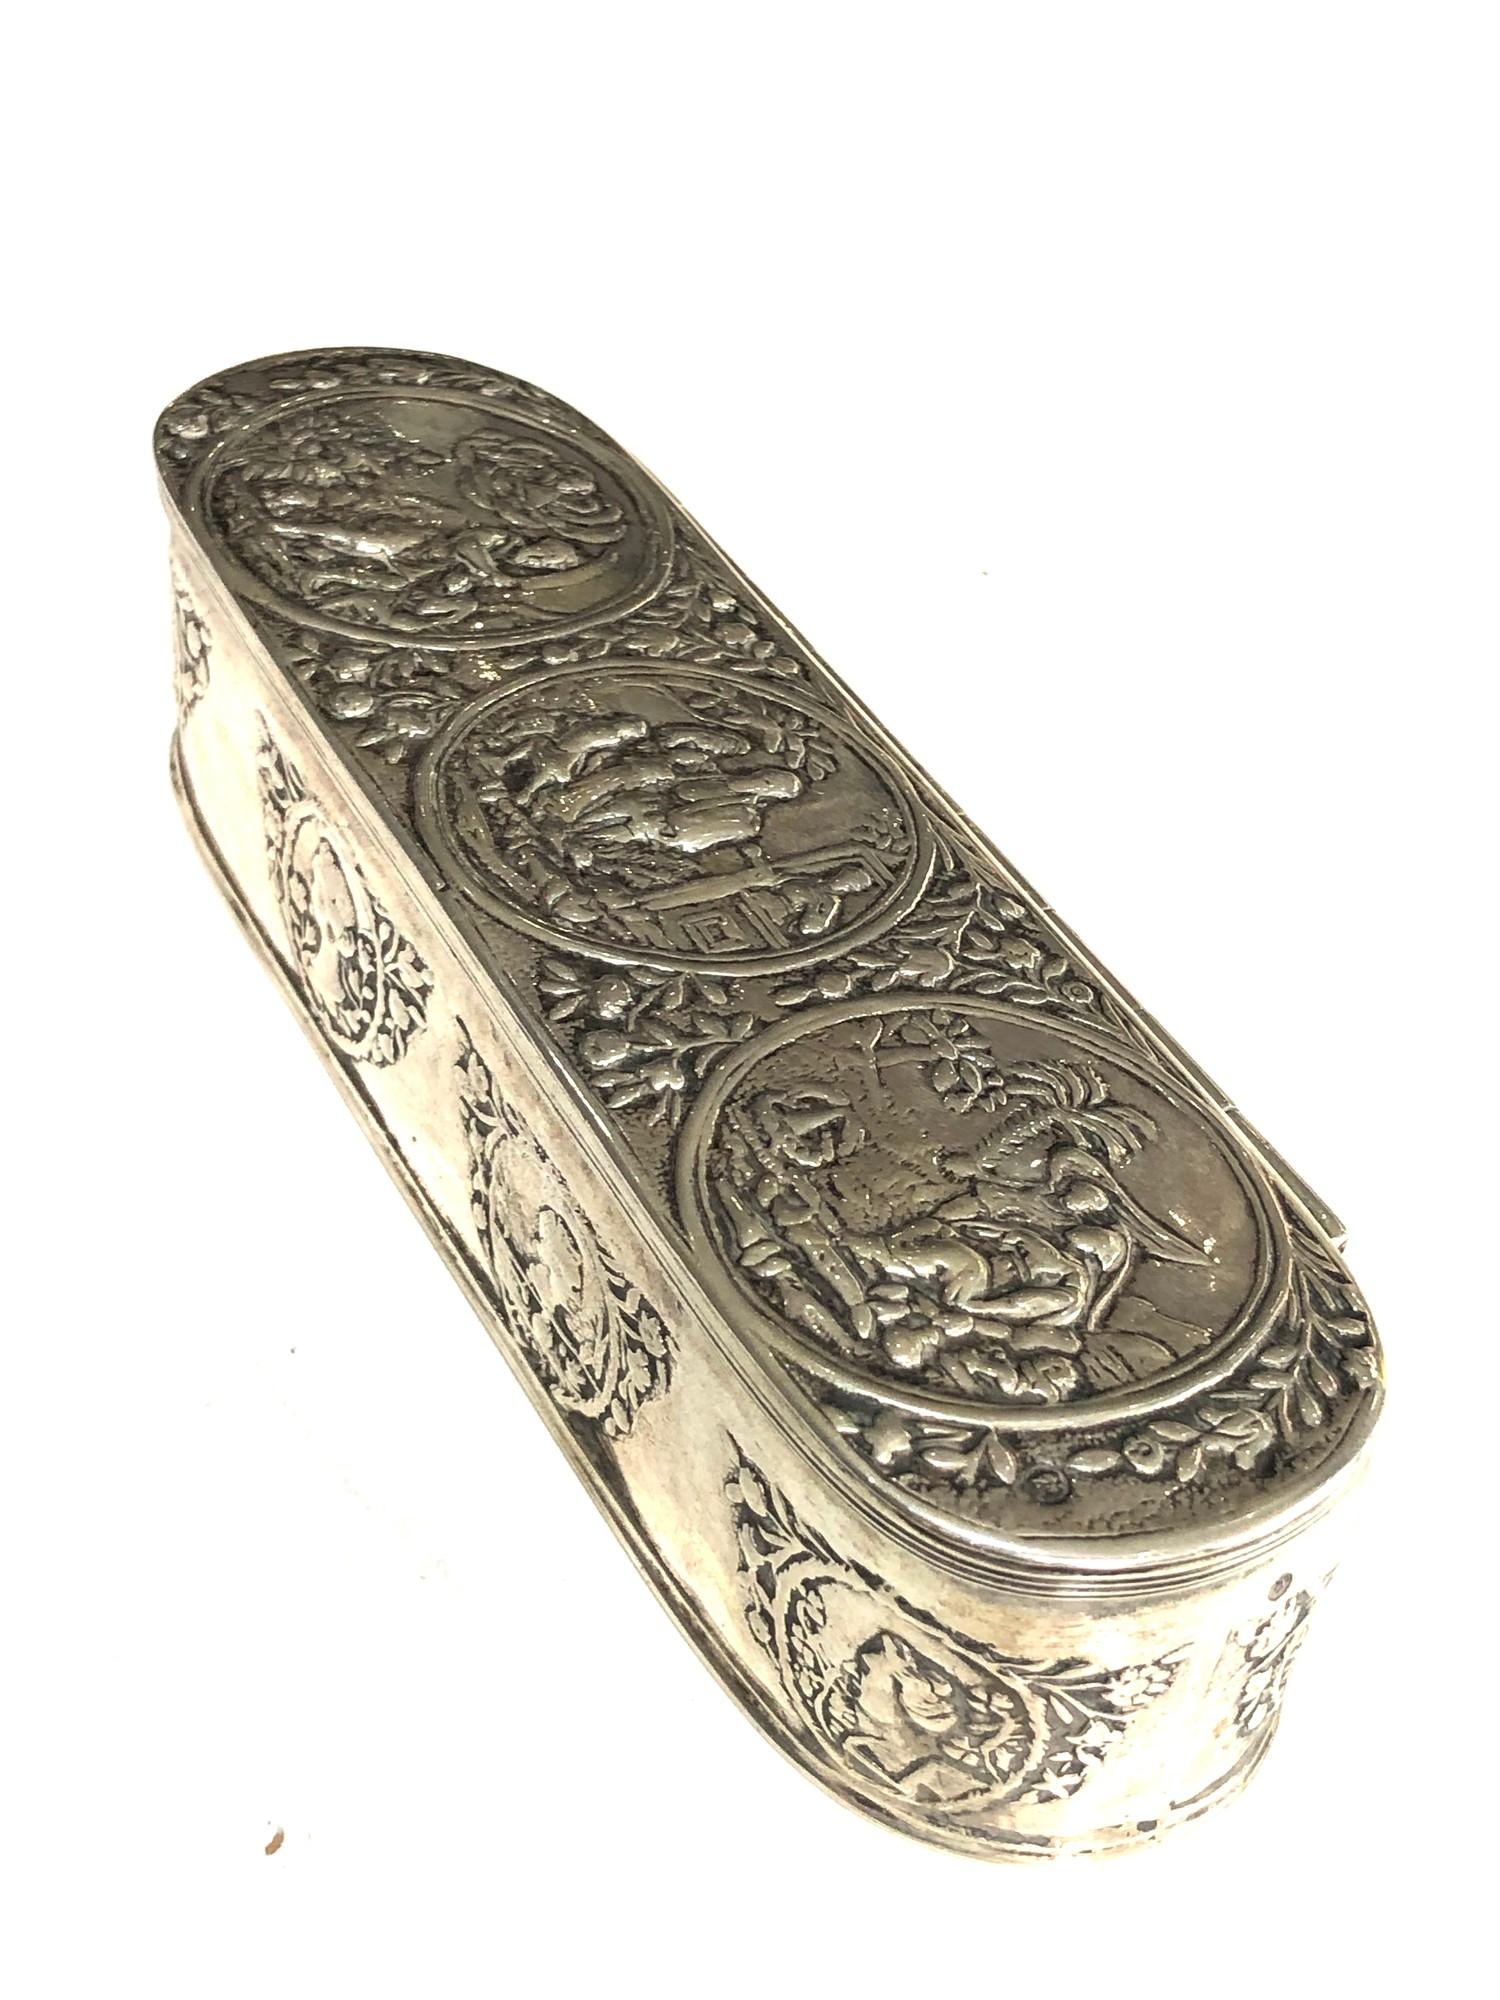 Antique Dutch silver tobacco box the hinged cover chased with scenes measures approx 16cm by 5cm 3. - Image 9 of 14